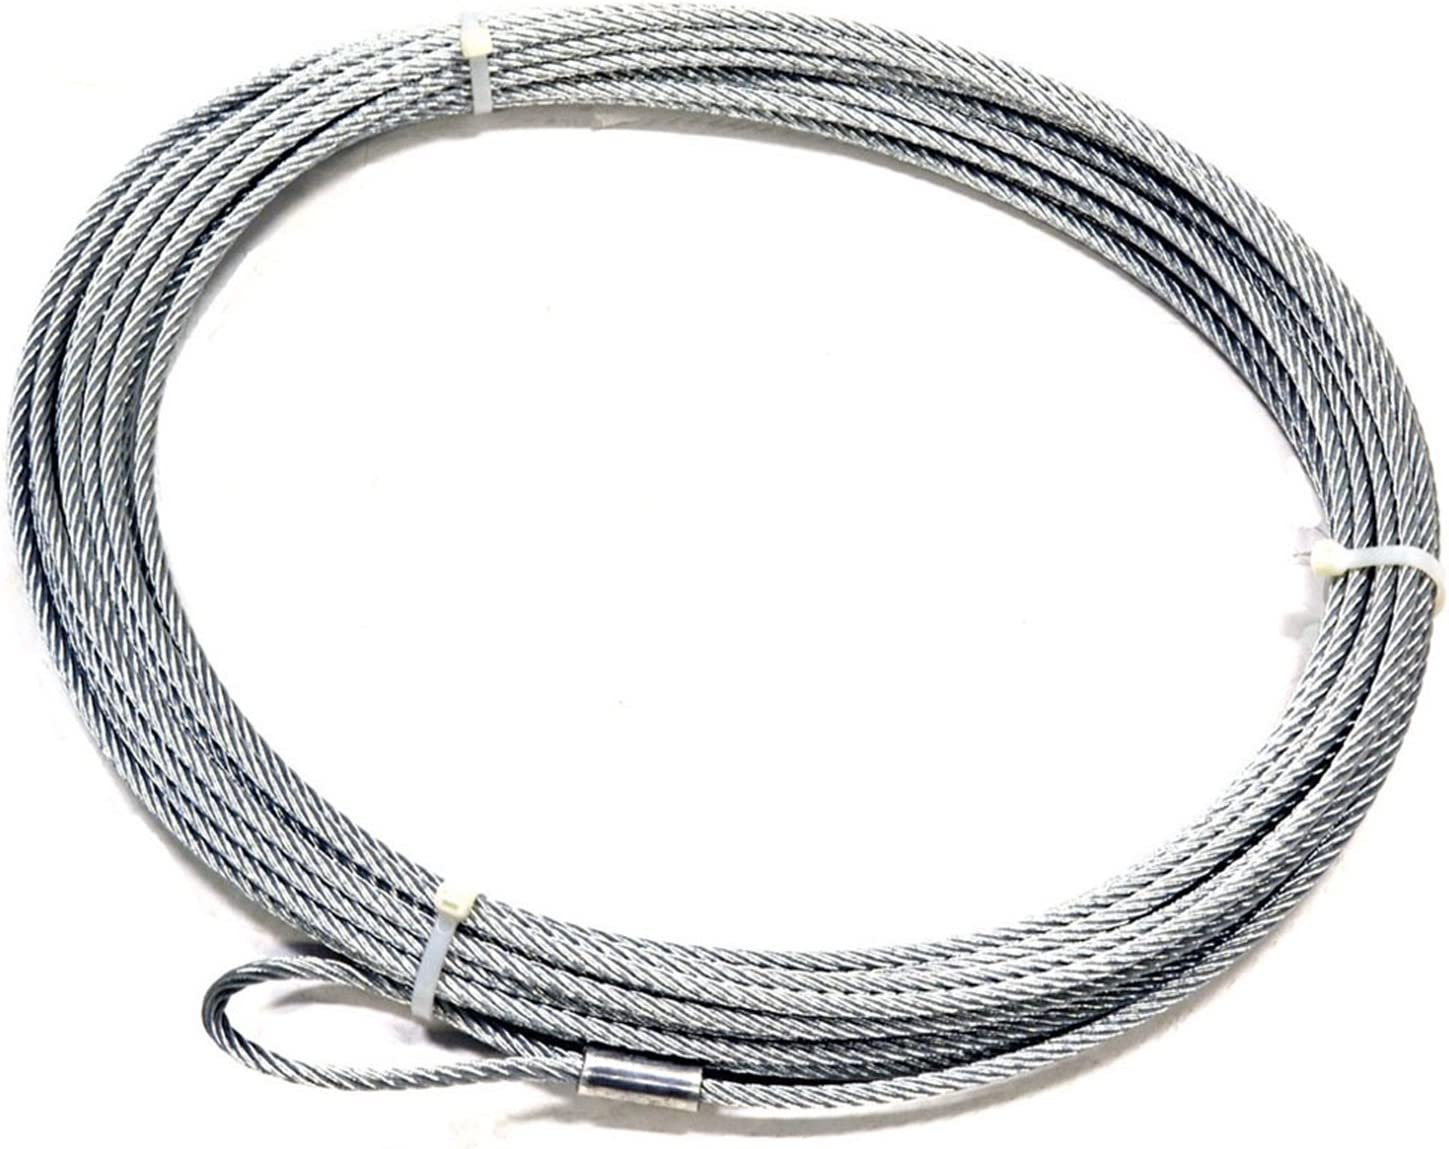 """B00029XEGG WARN 27110 Winch Accessory: Steel Cable Wire Rope with Loop End and Terminal, 5/16"""" Diameter x 100' Length 71p6ck0kn8L.SL1500_"""